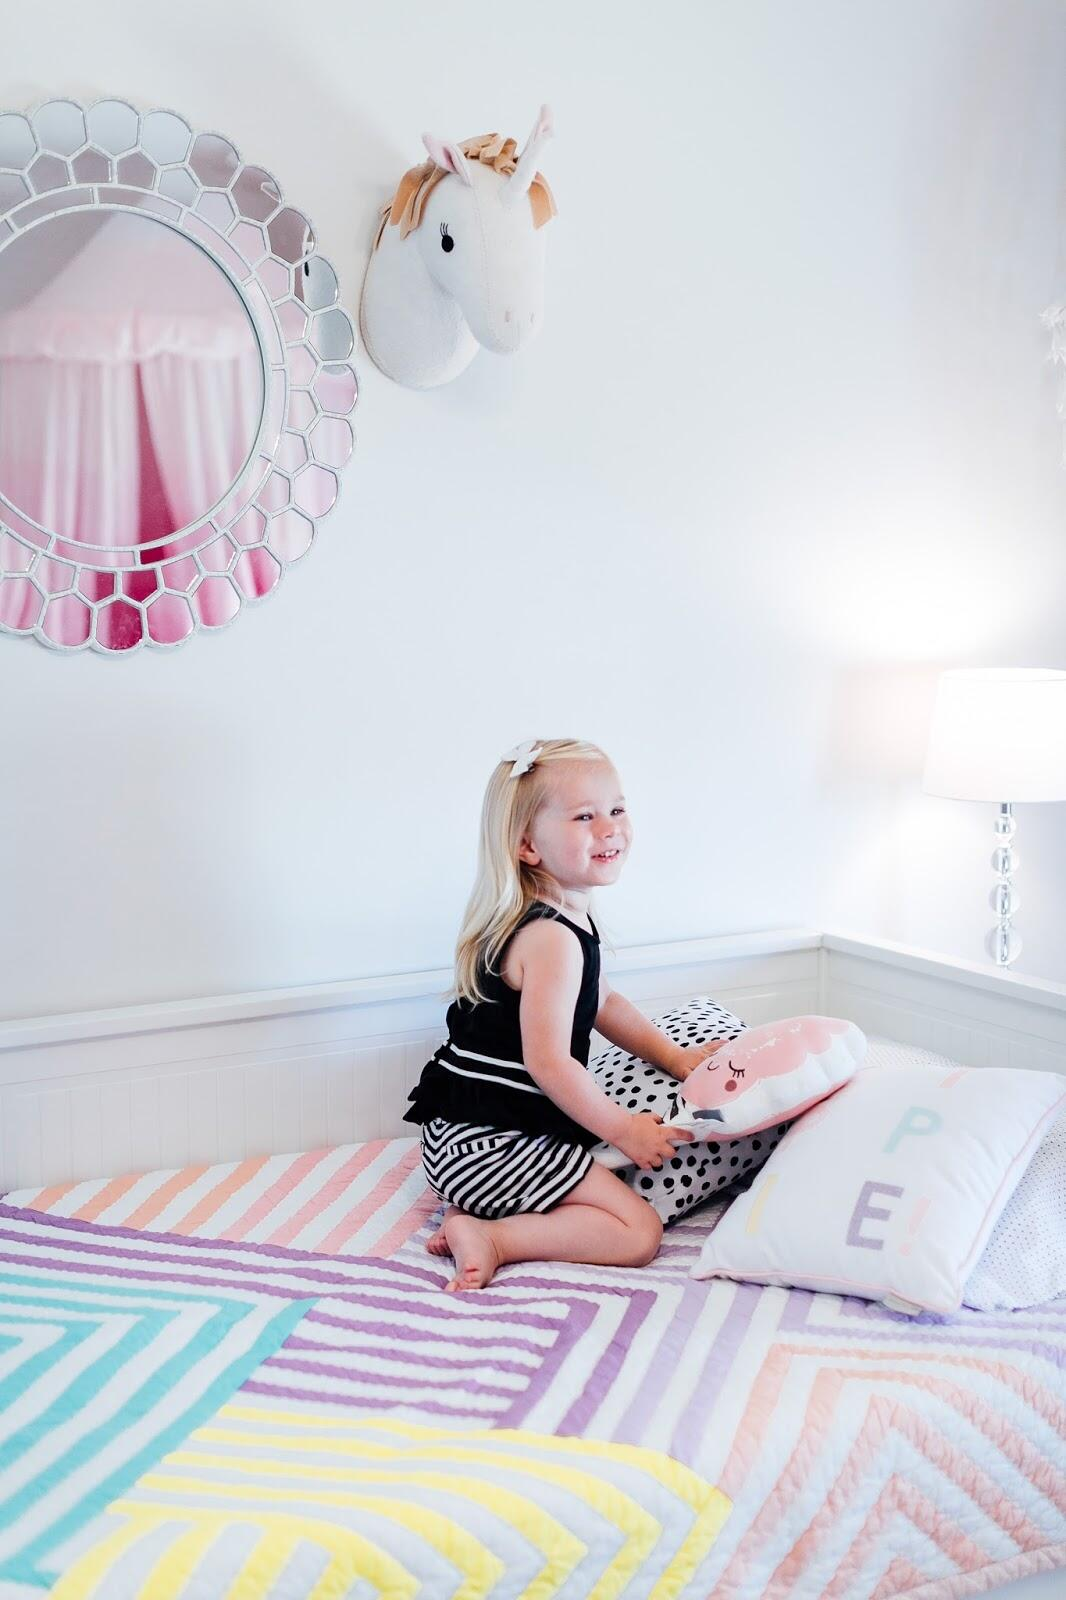 Toddler Room Ideas - Leighton's Big Girl Bed & Room Reveal by popular blogger Laura of Walking in Memphis in High Heels